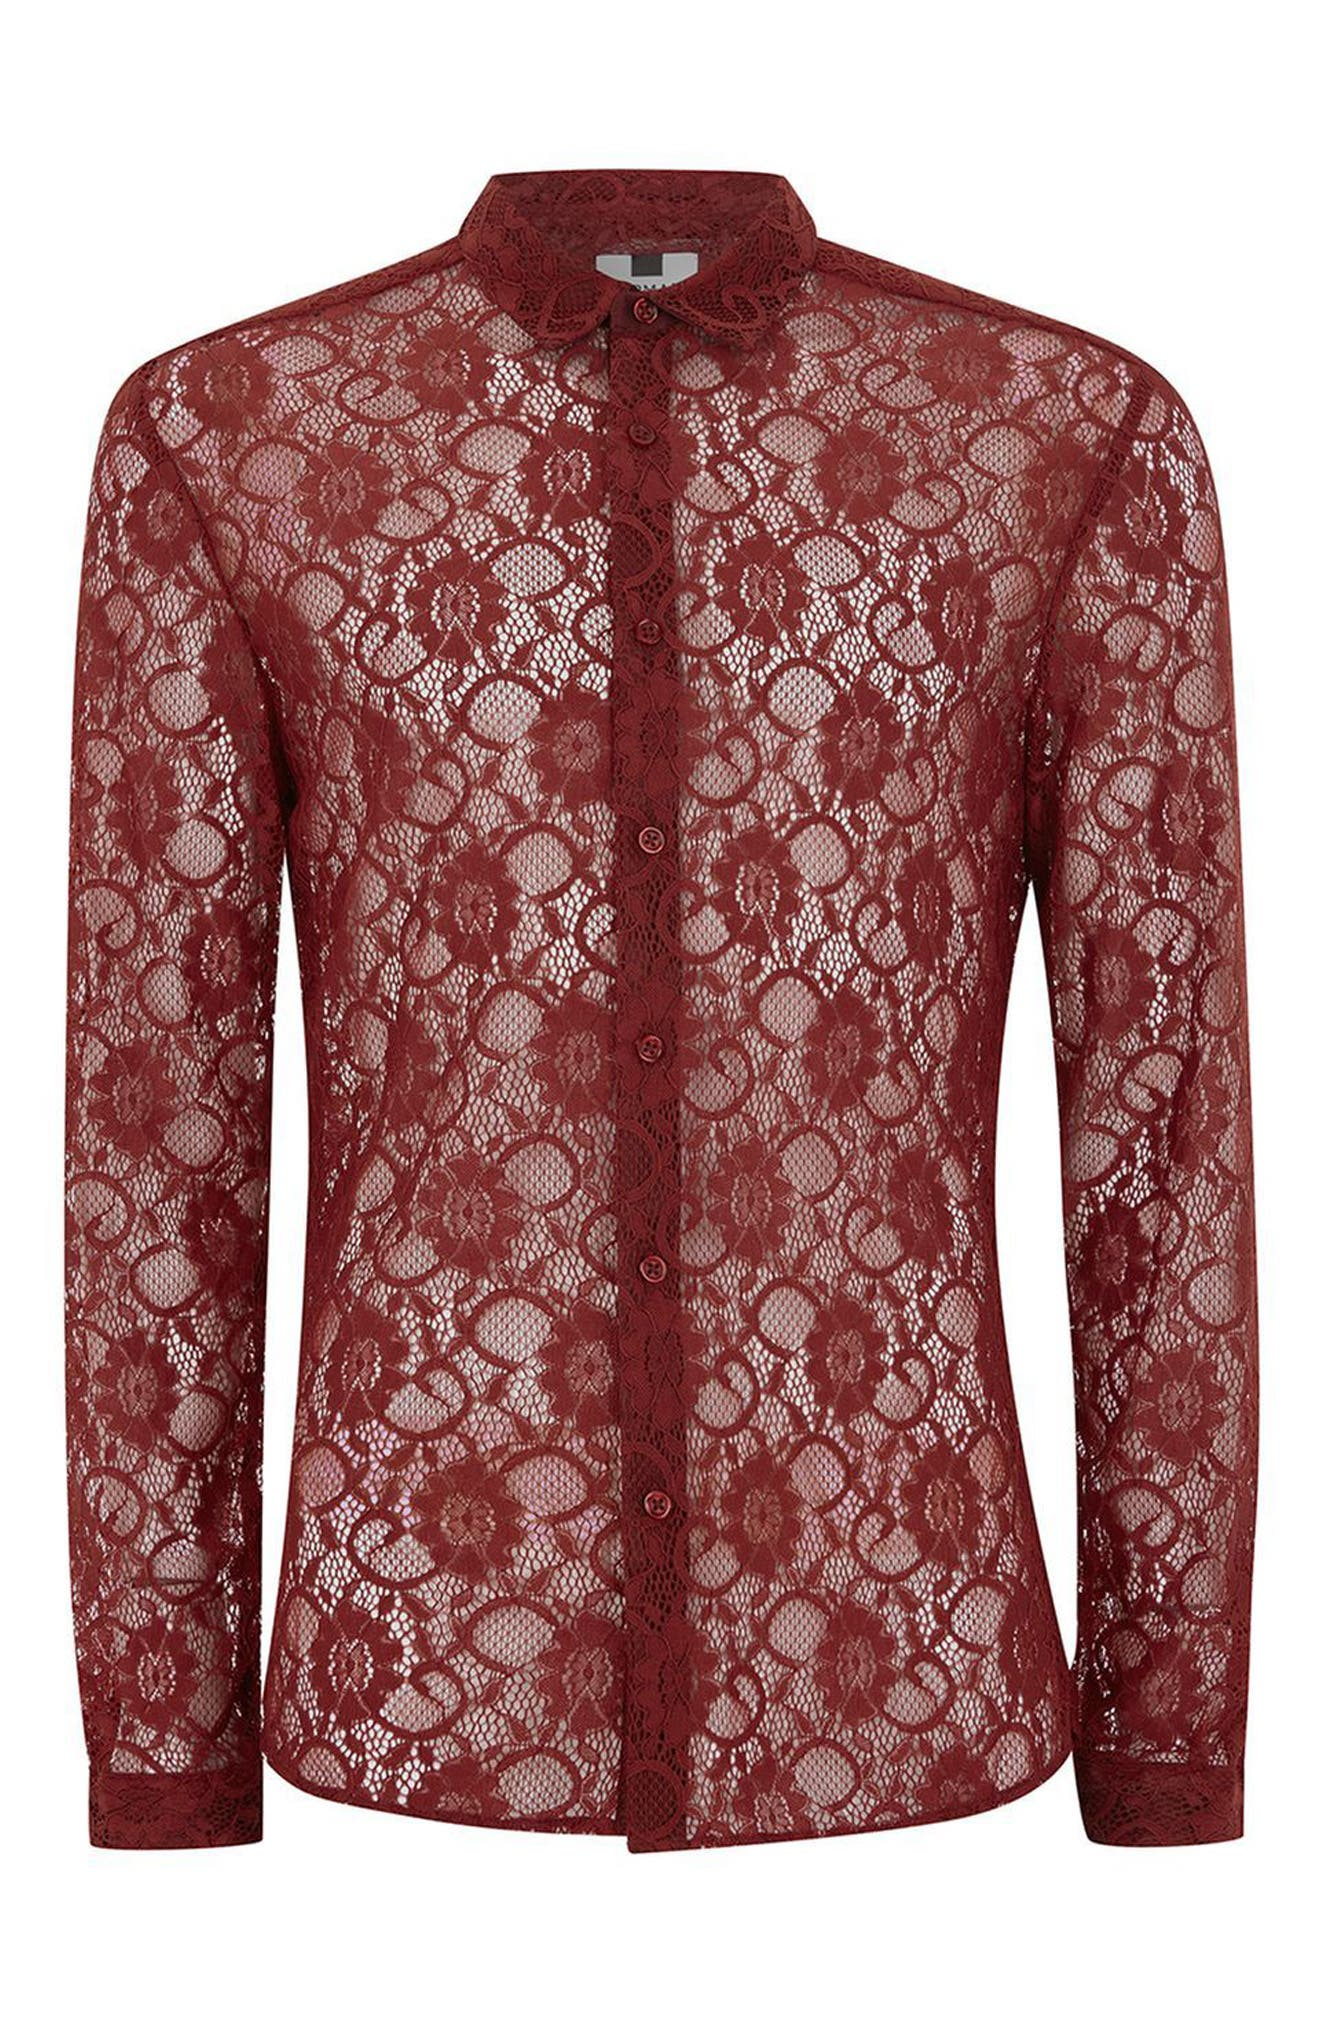 Muscle Fit Sheer Lace Shirt,                             Alternate thumbnail 4, color,                             Red